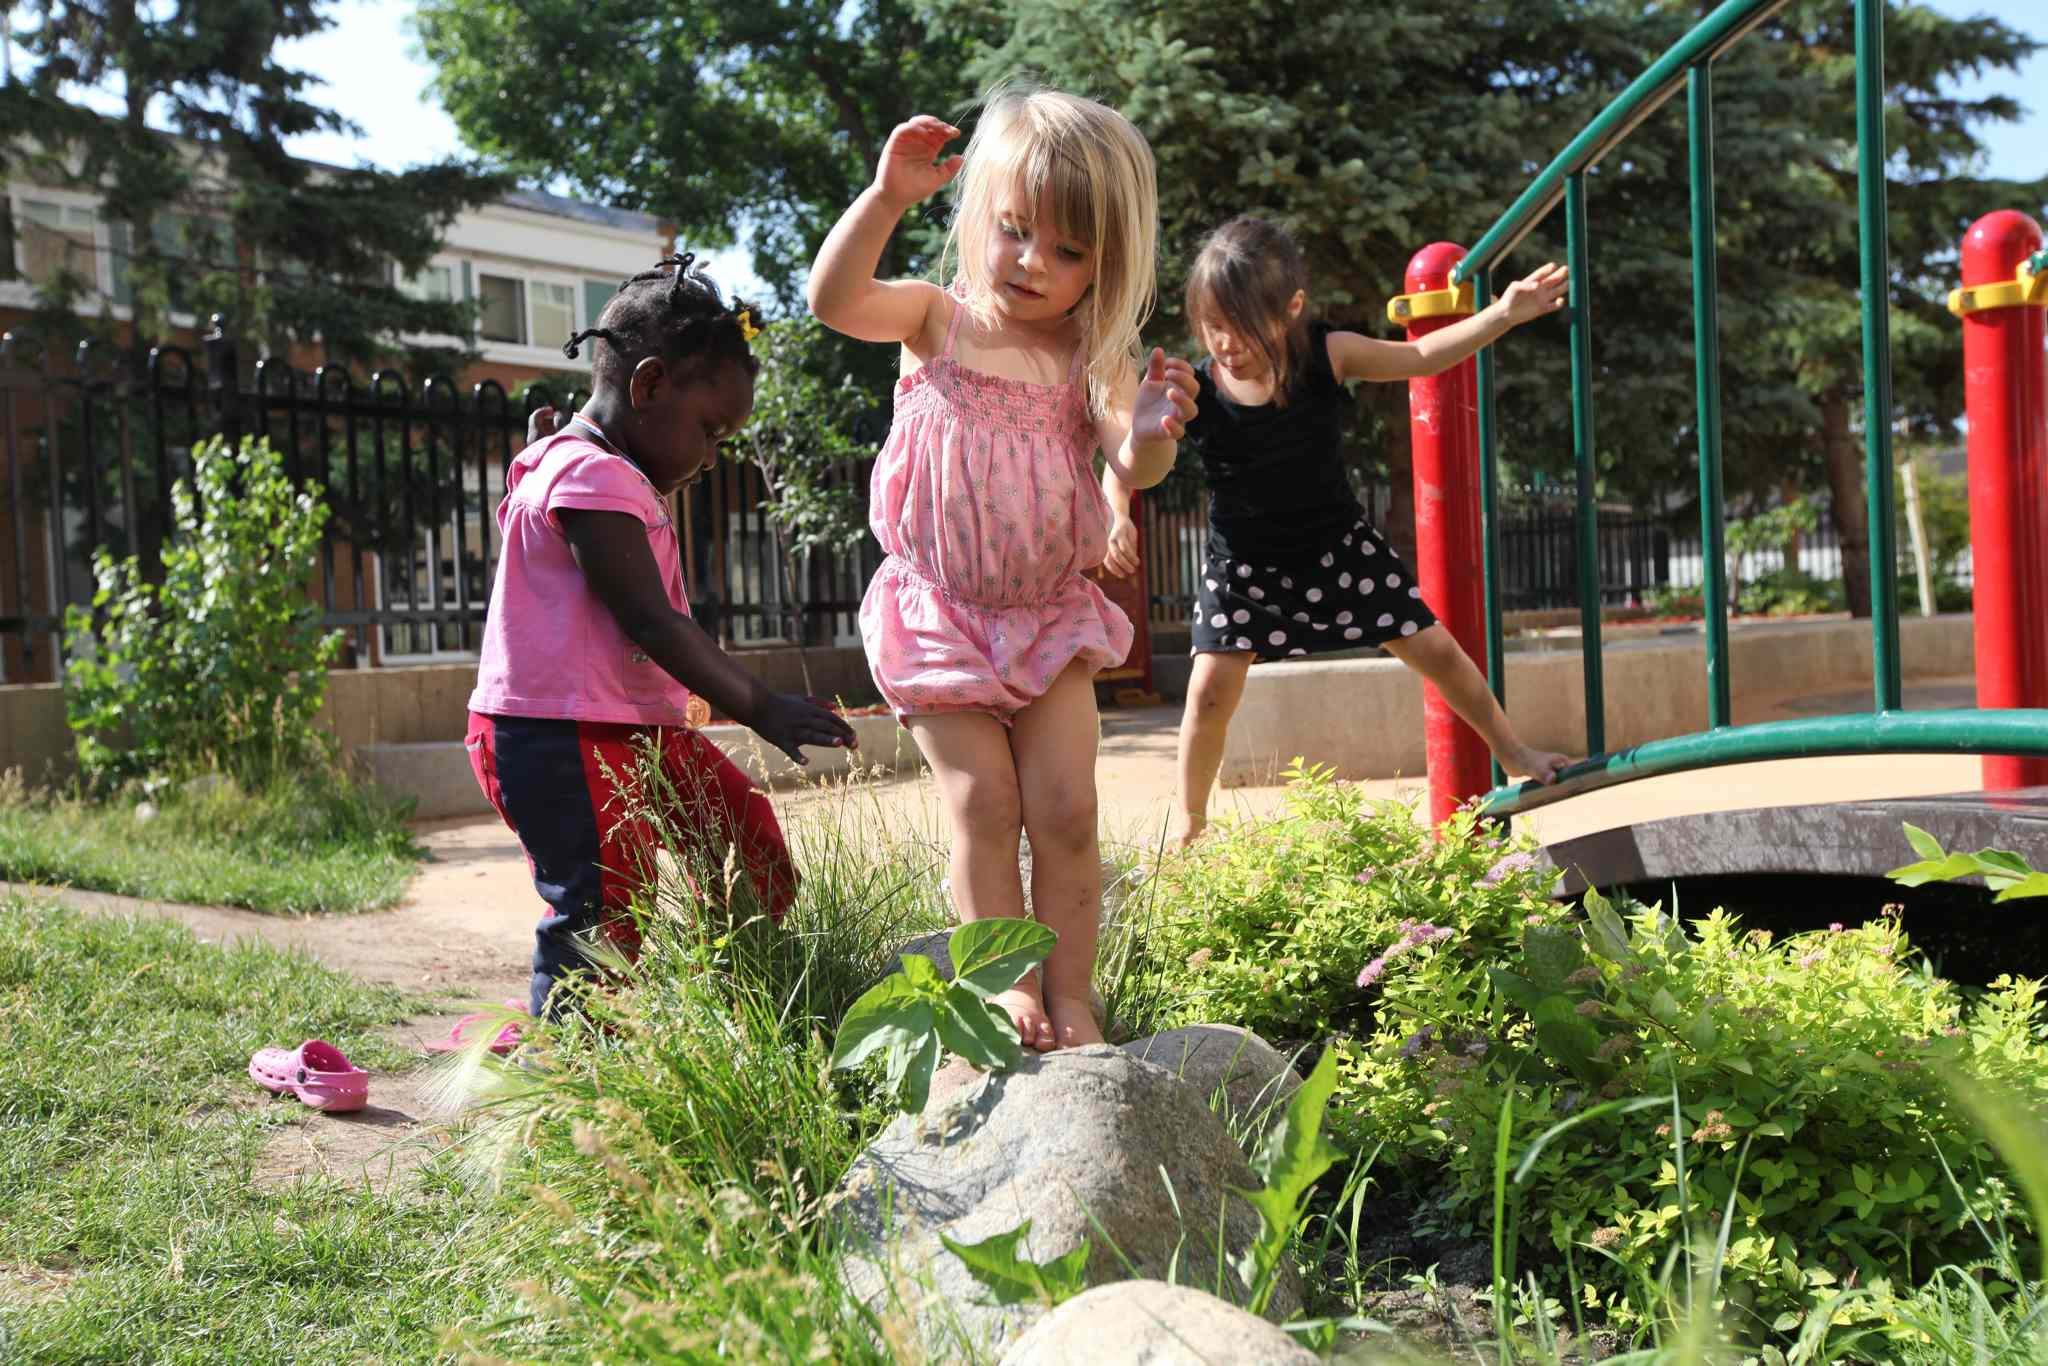 Manidoo-Lord Selkirk Park Childcare Centre sends kids outdoors and gets them ready to start school.